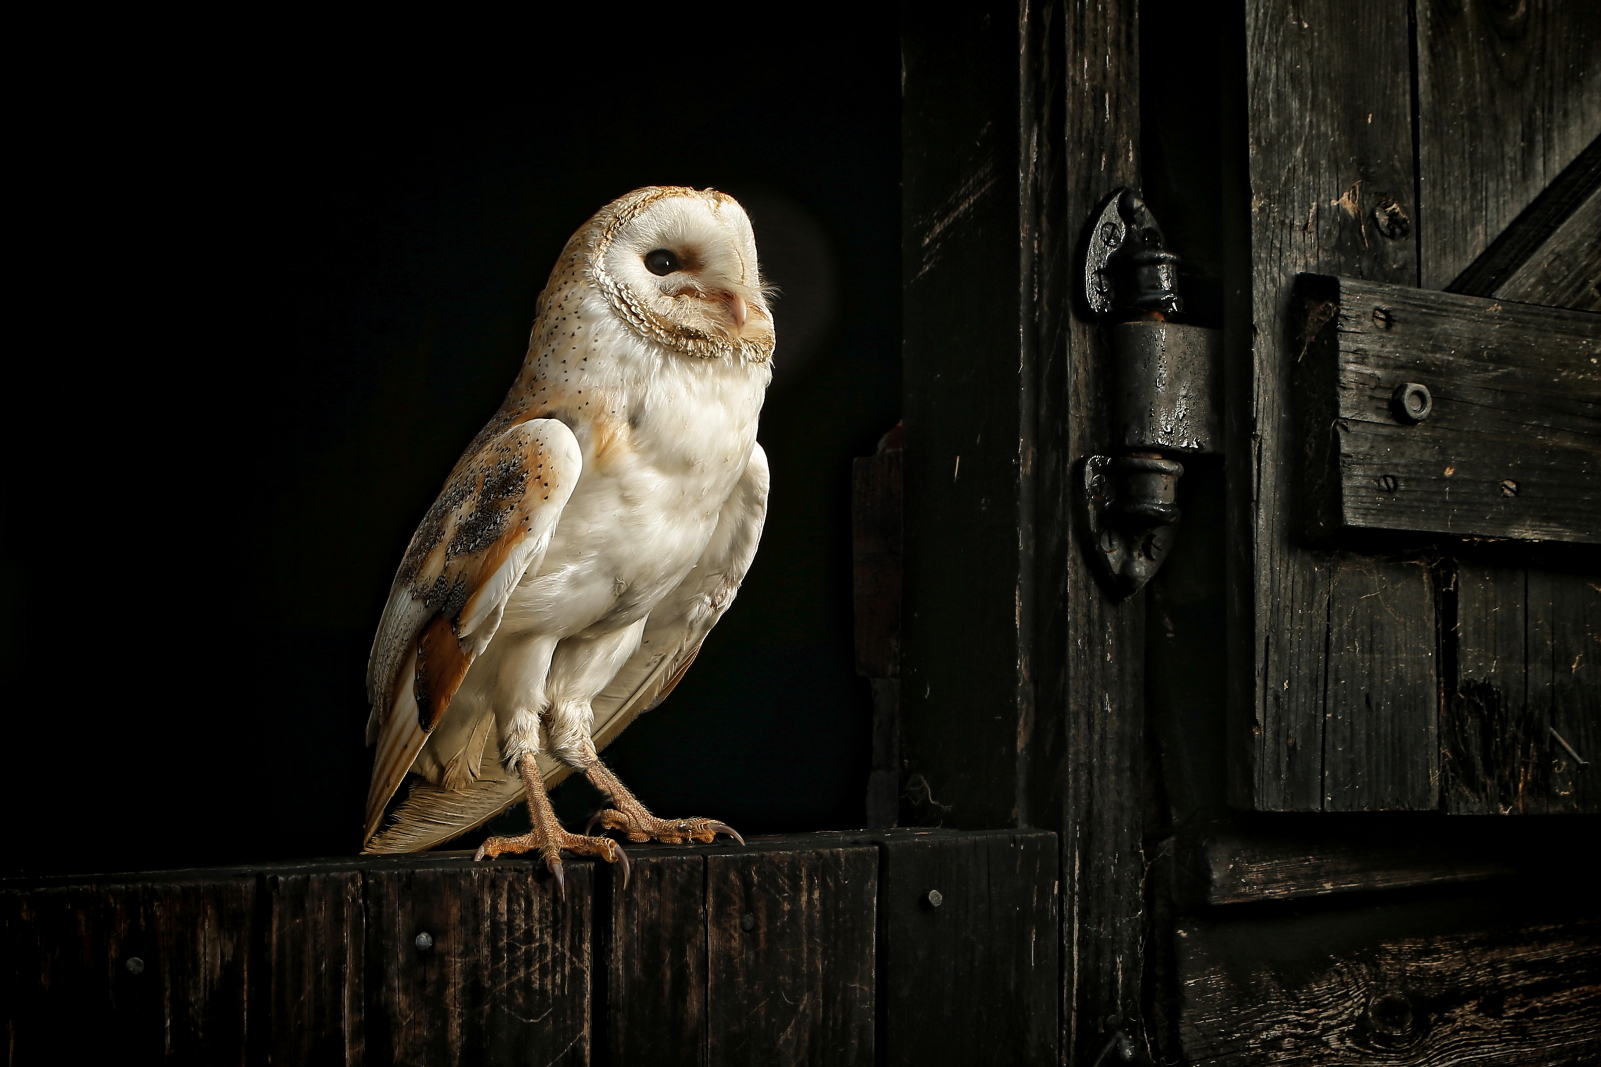 <h5>Barn Owl</h5><p>By Colin Brister																																		</p>